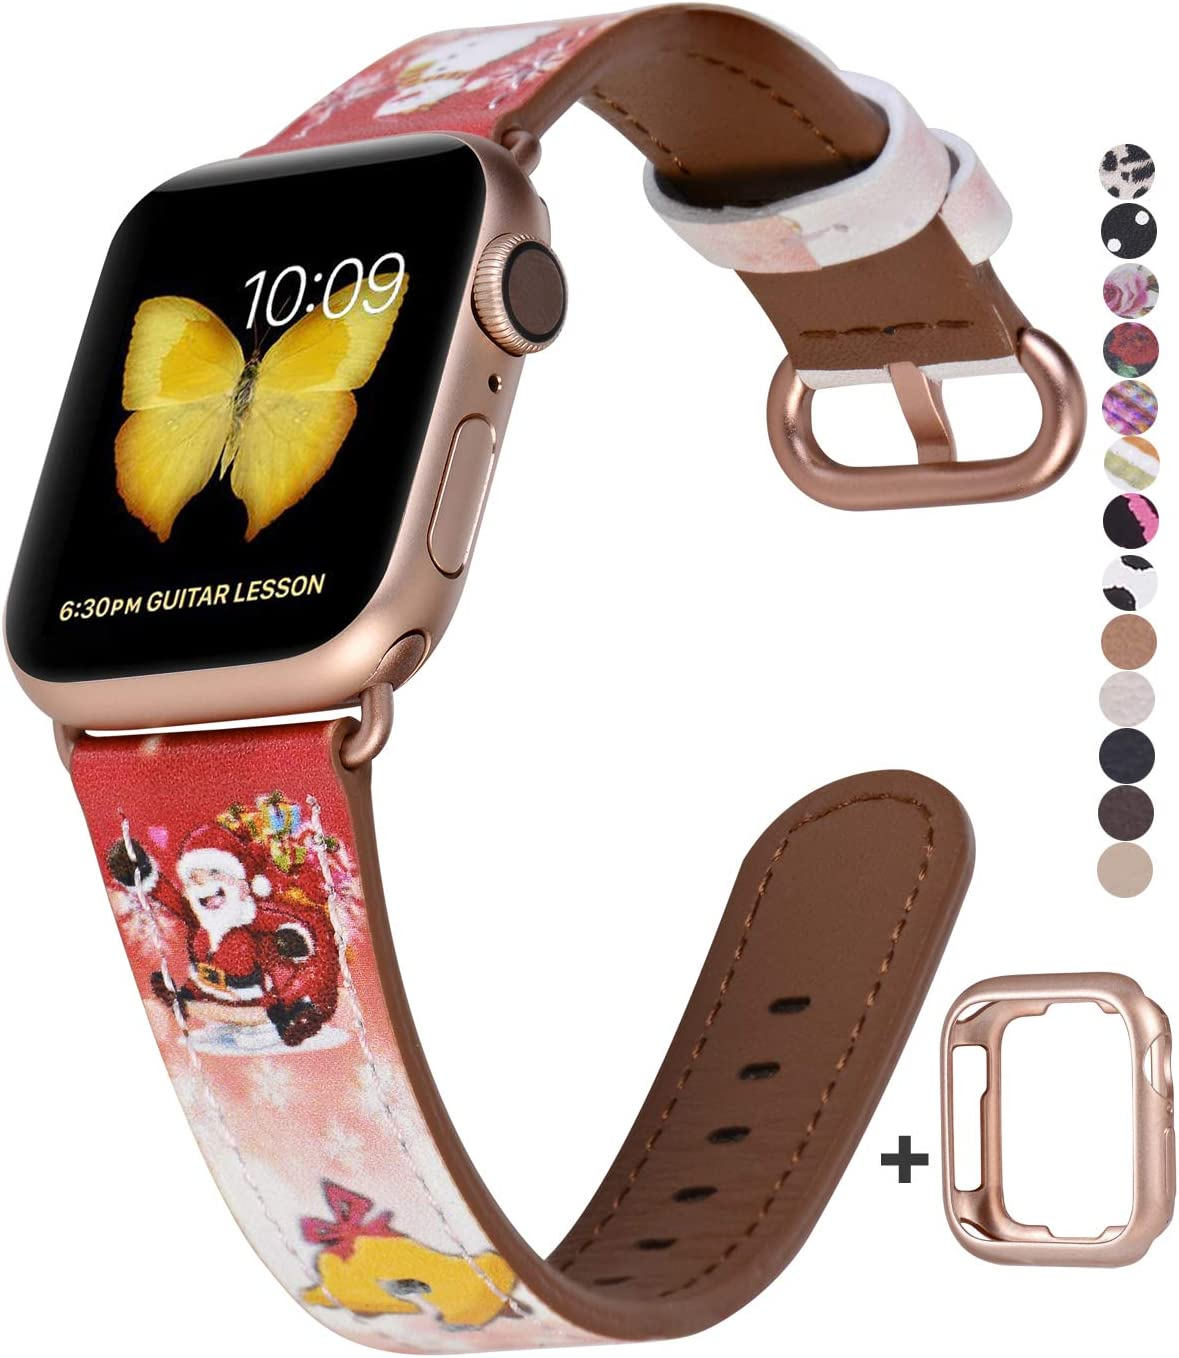 JSGJMY Compatible with Apple Watch Band 38mm 40mm with Case,Women Genuine Leather with Series 5/4/3 Rose Gold Adapter and Buckle for iwatch Series 5/4/3/2/1, Red Christmas Series Pattern